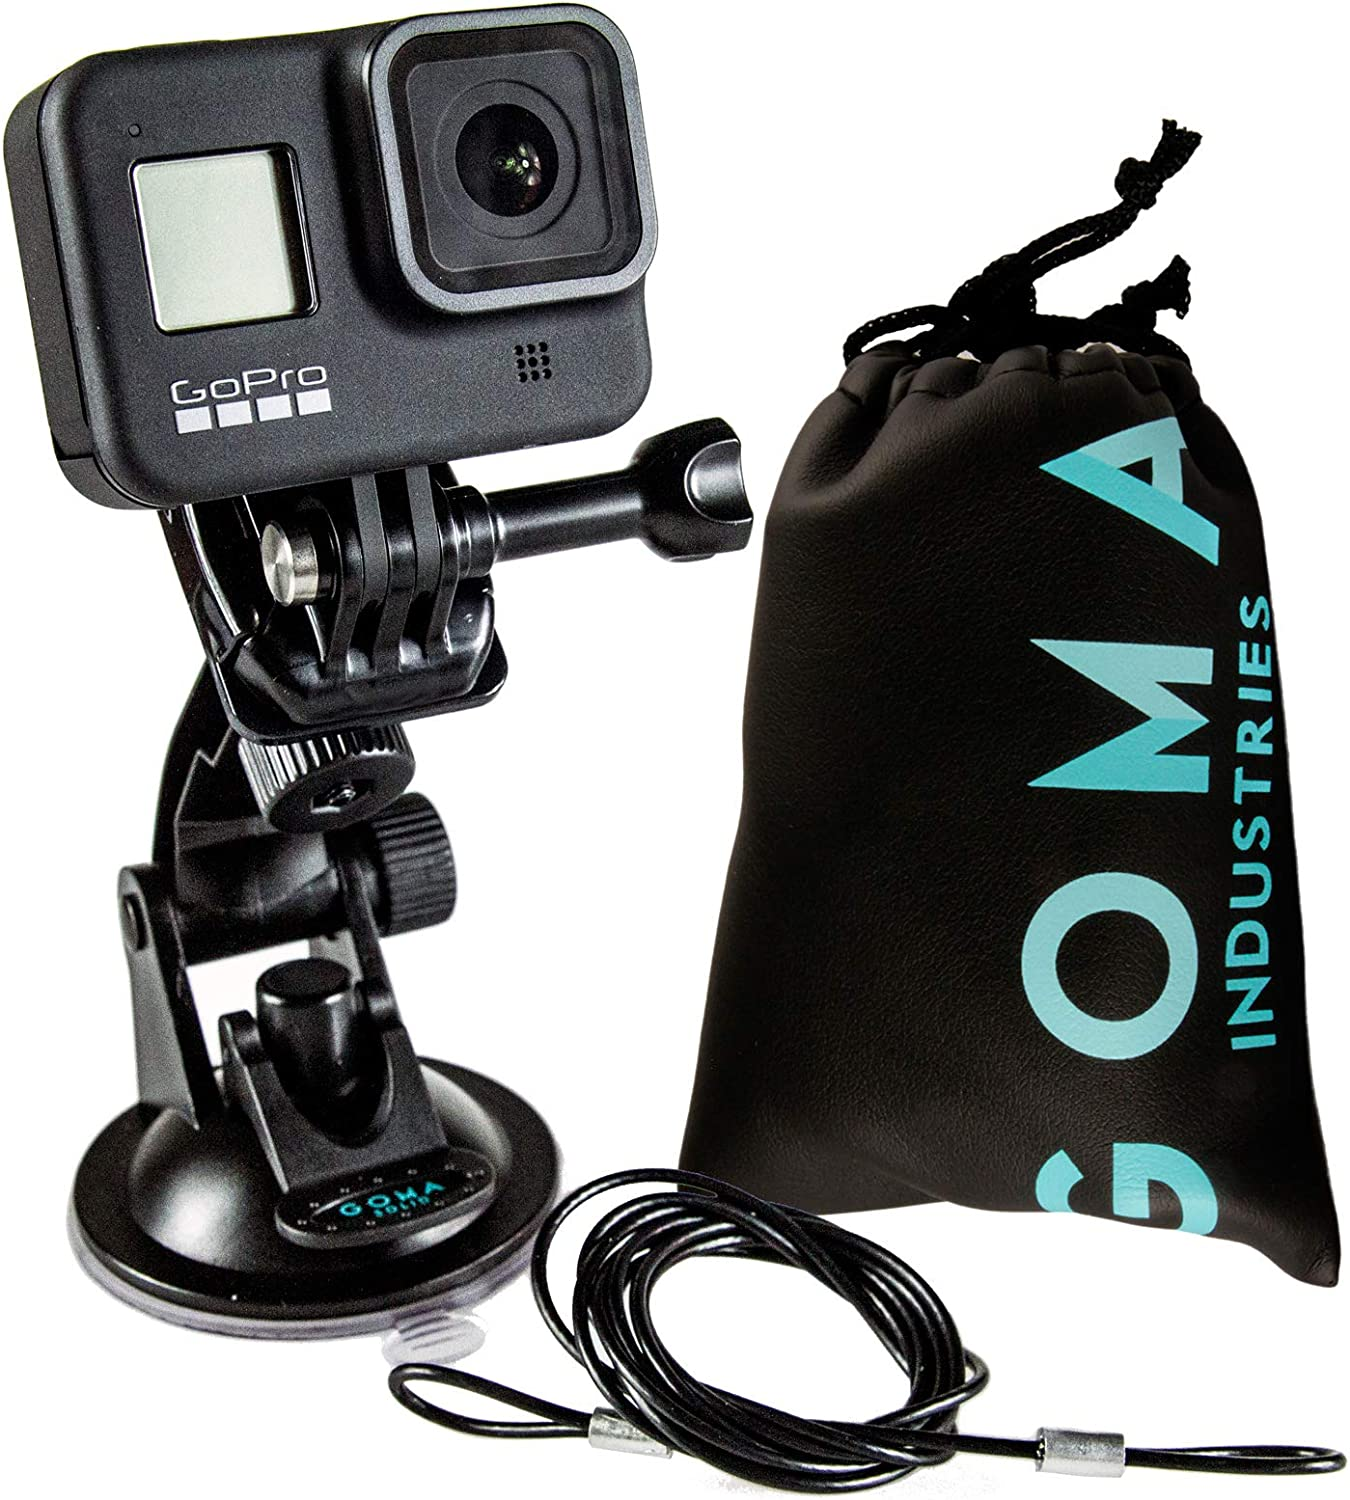 GOMA Suction Cup Car Mount Kit for GoPro Hero Cameras